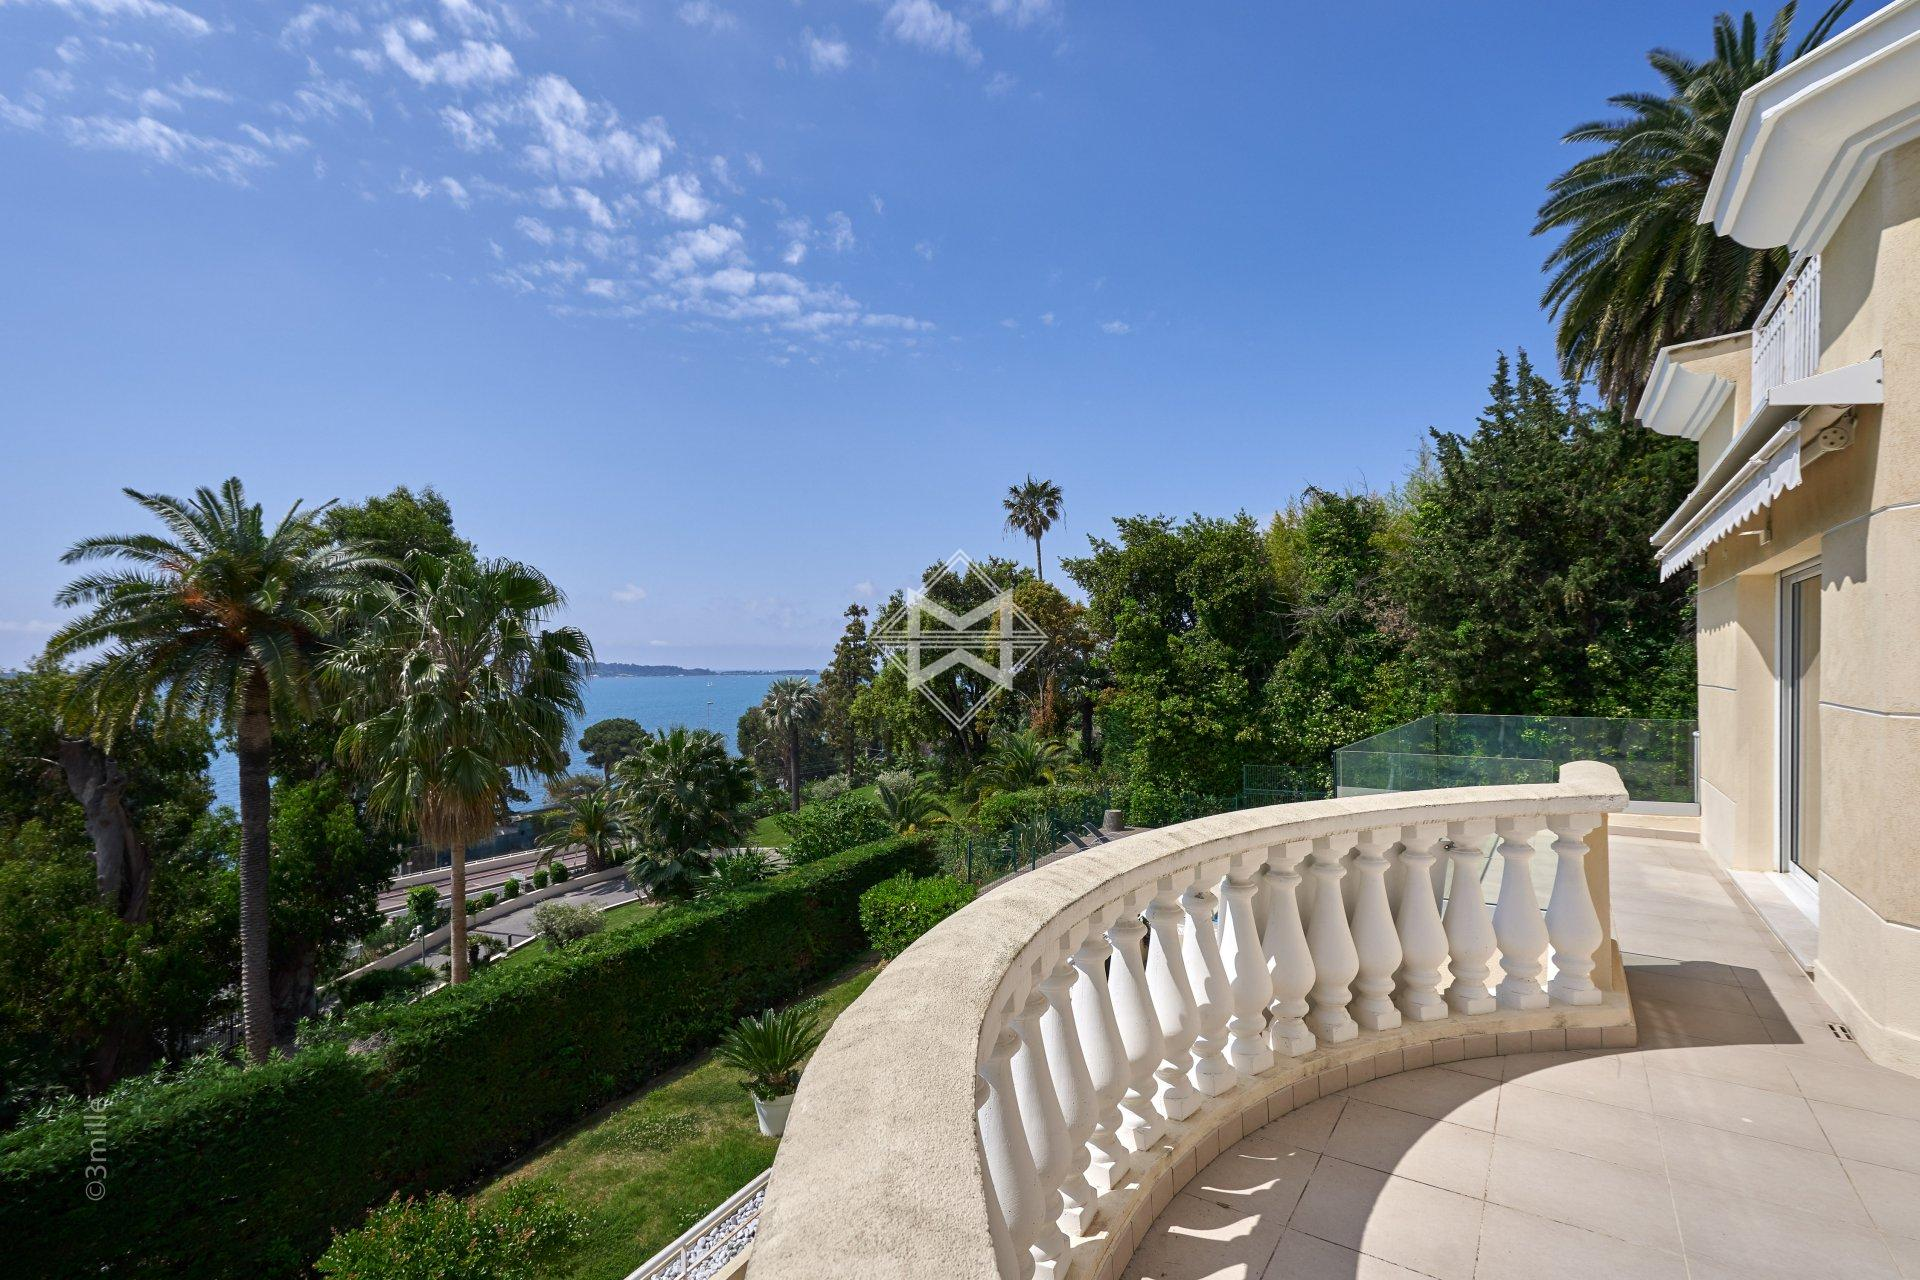 Sale Apartment Cannes - 2 Bedrooms - Sea View